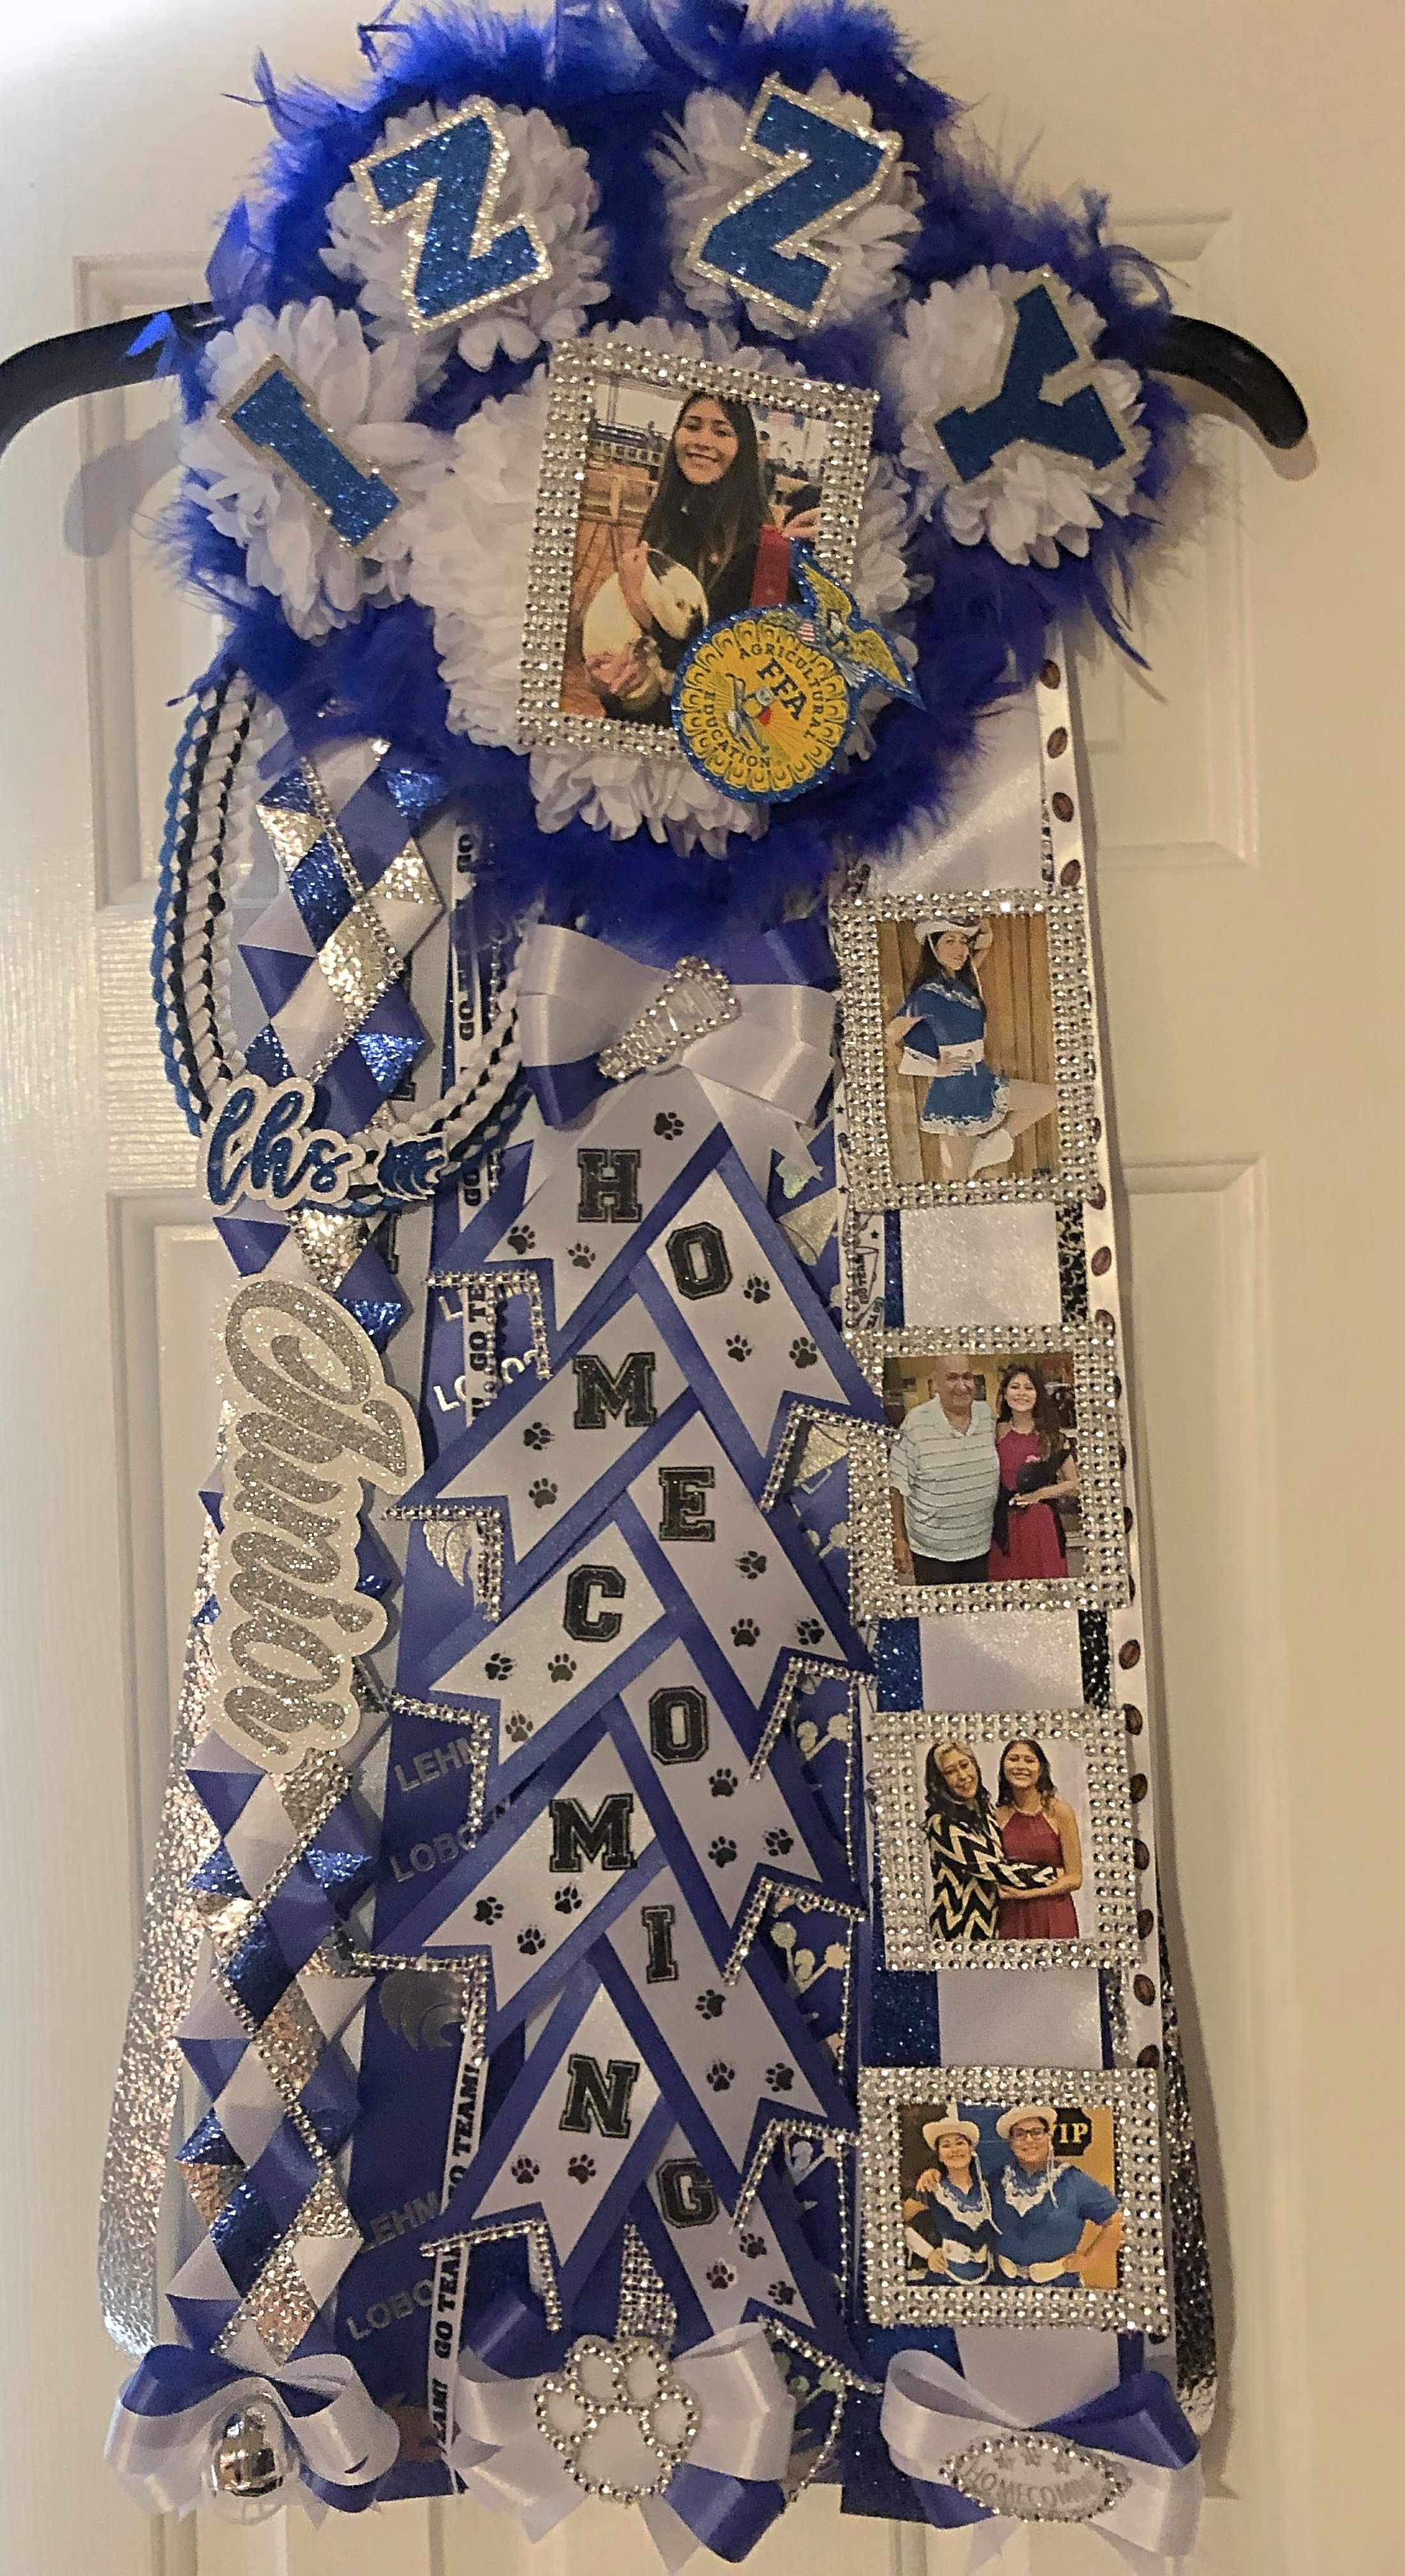 Paw Print Homecoming Mum